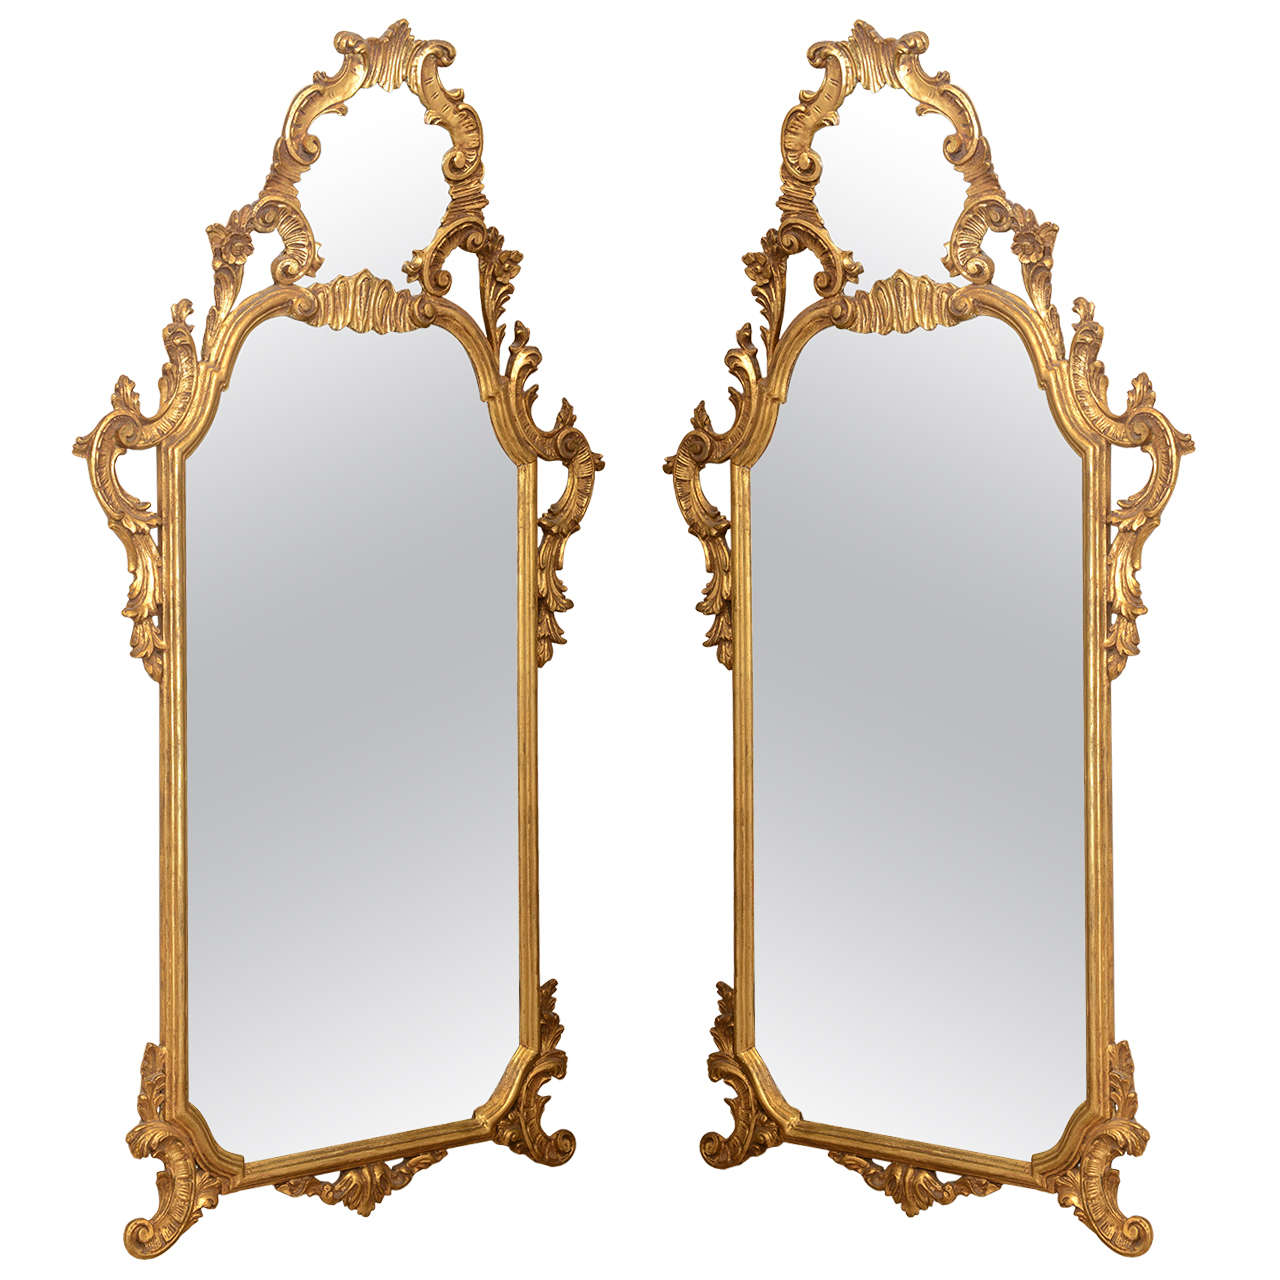 Pair of narrow italian giltwood mirrors for sale at 1stdibs for Narrow mirror